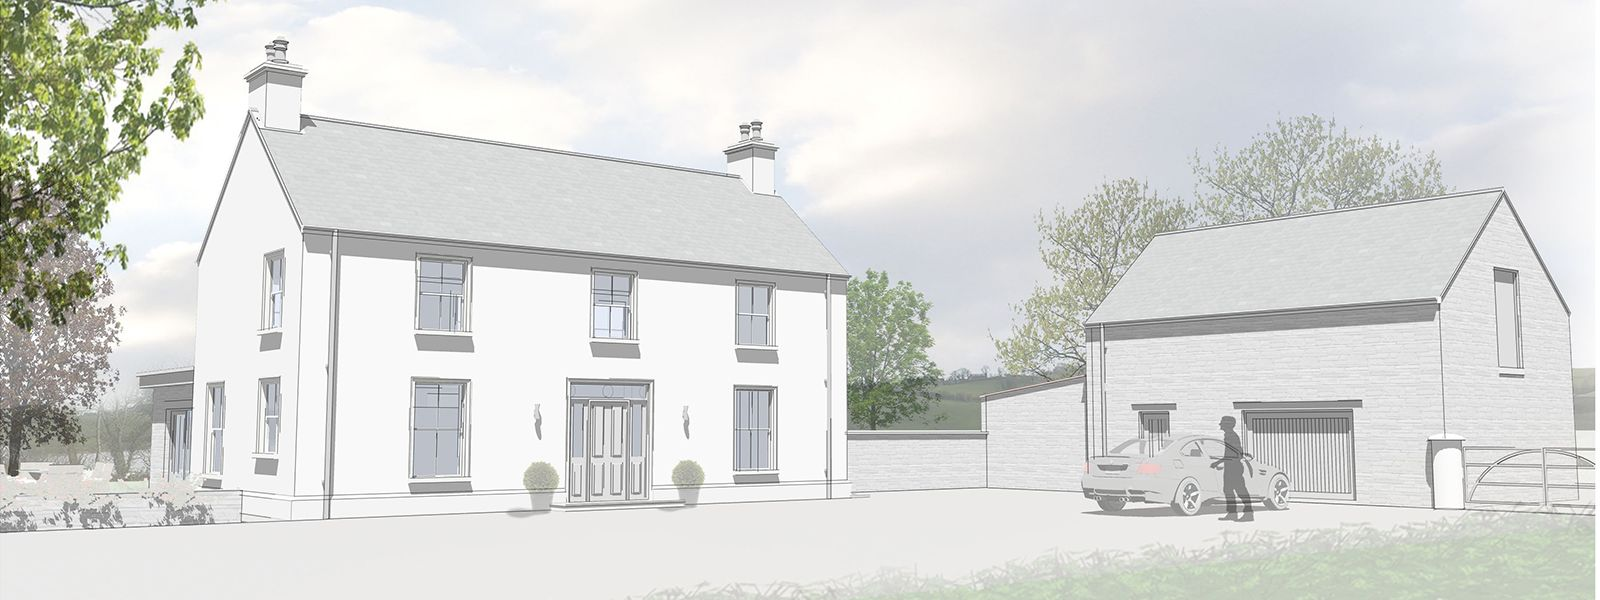 Traditional country house plans ireland for Modern cottage house plans ireland